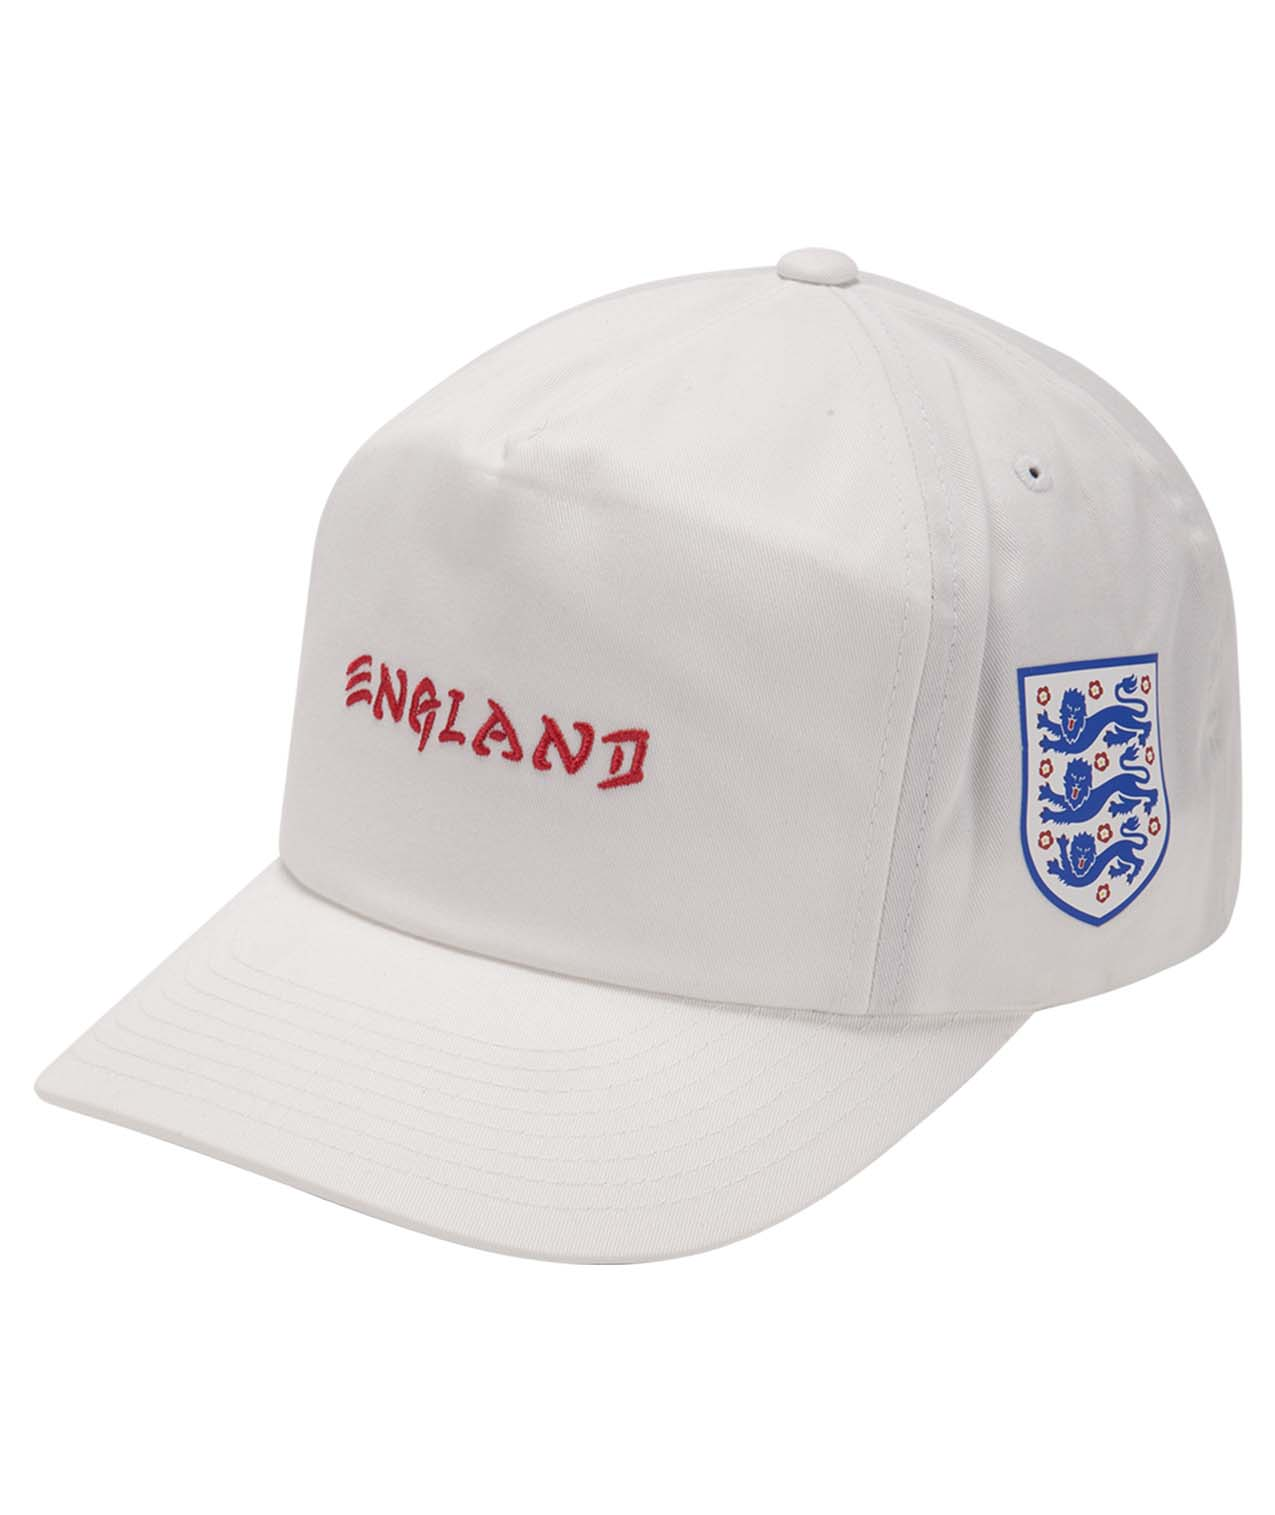 HURLEY M ENGLAND NATIONAL TEAM HAT 100